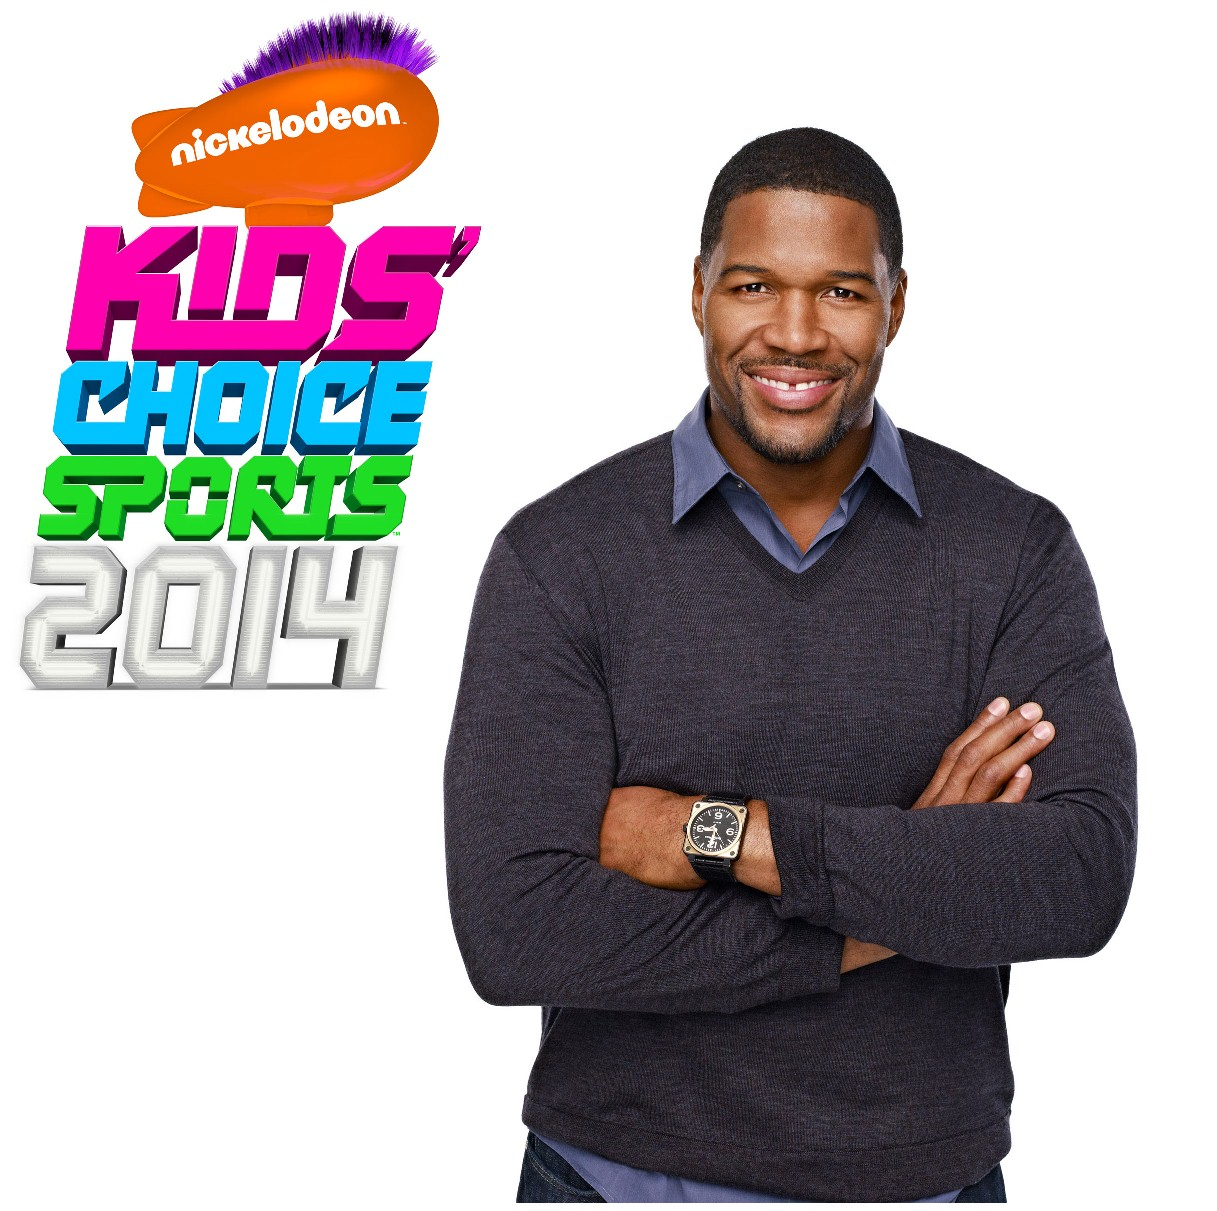 Strahan to Host Nickelodeon's First Kids' Choice Sports Awards